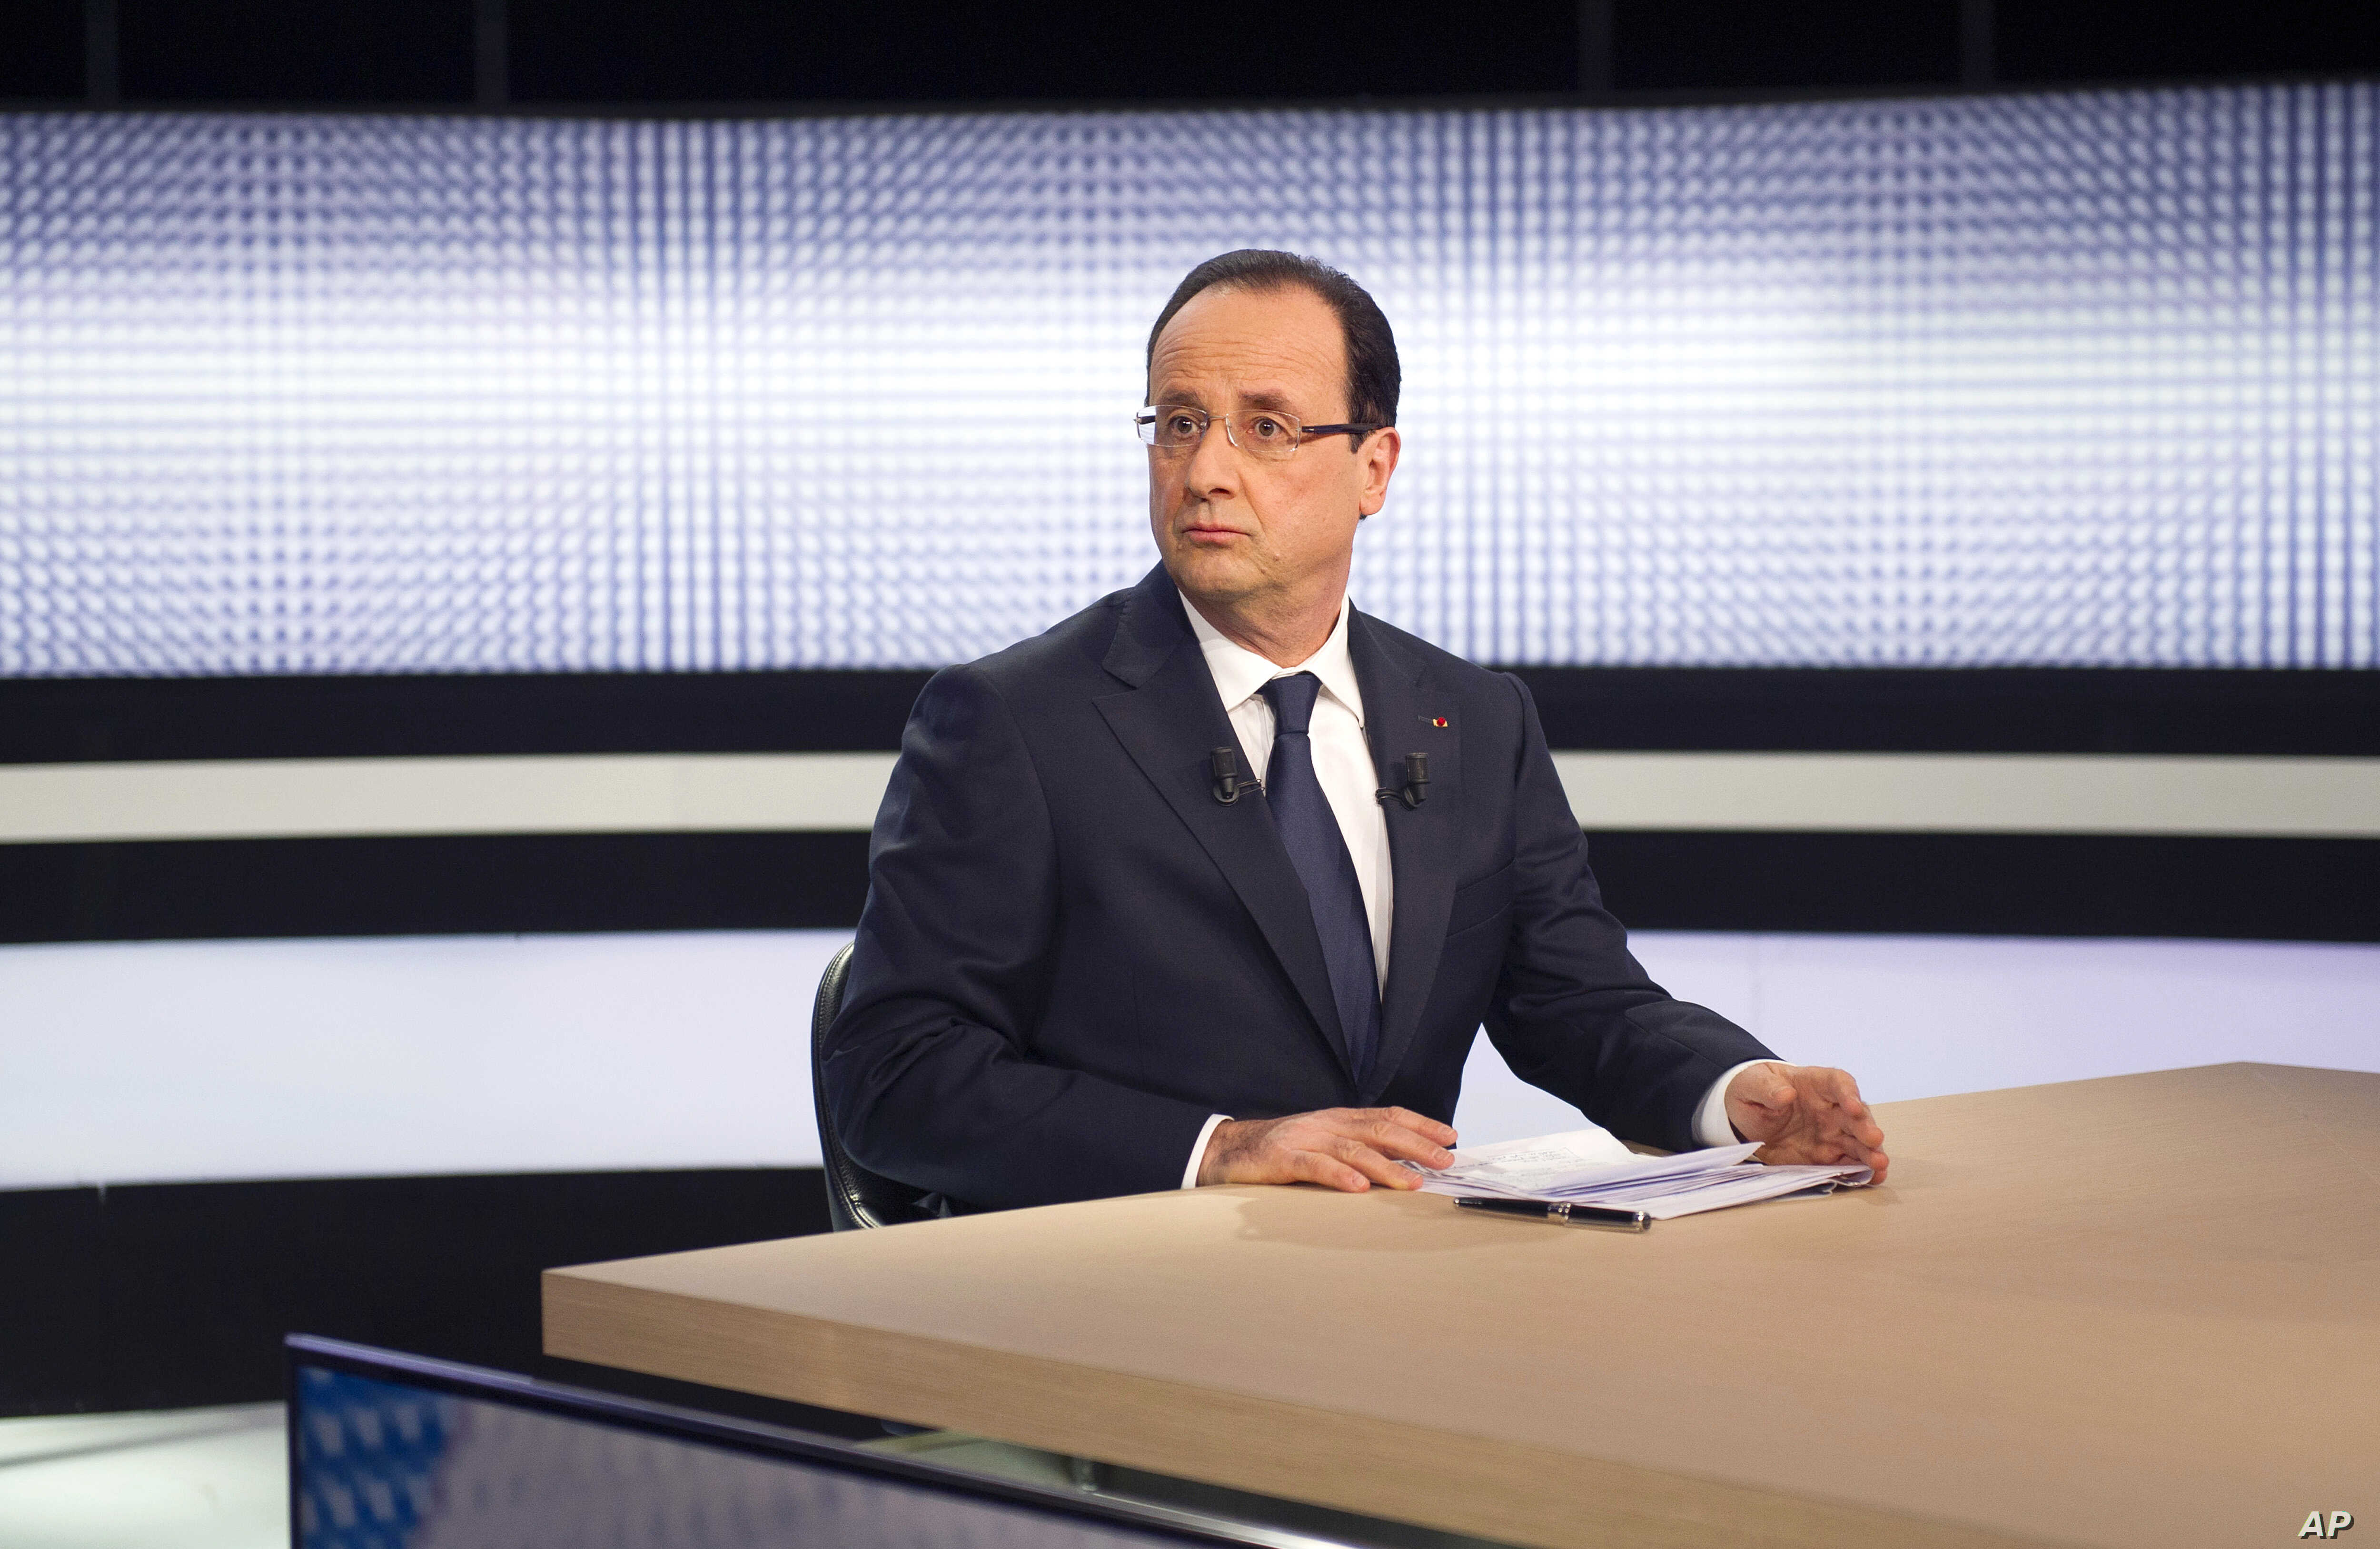 France President Francois Hollande during a televised interview on a French TV channel, March 28, 2013, in Paris.